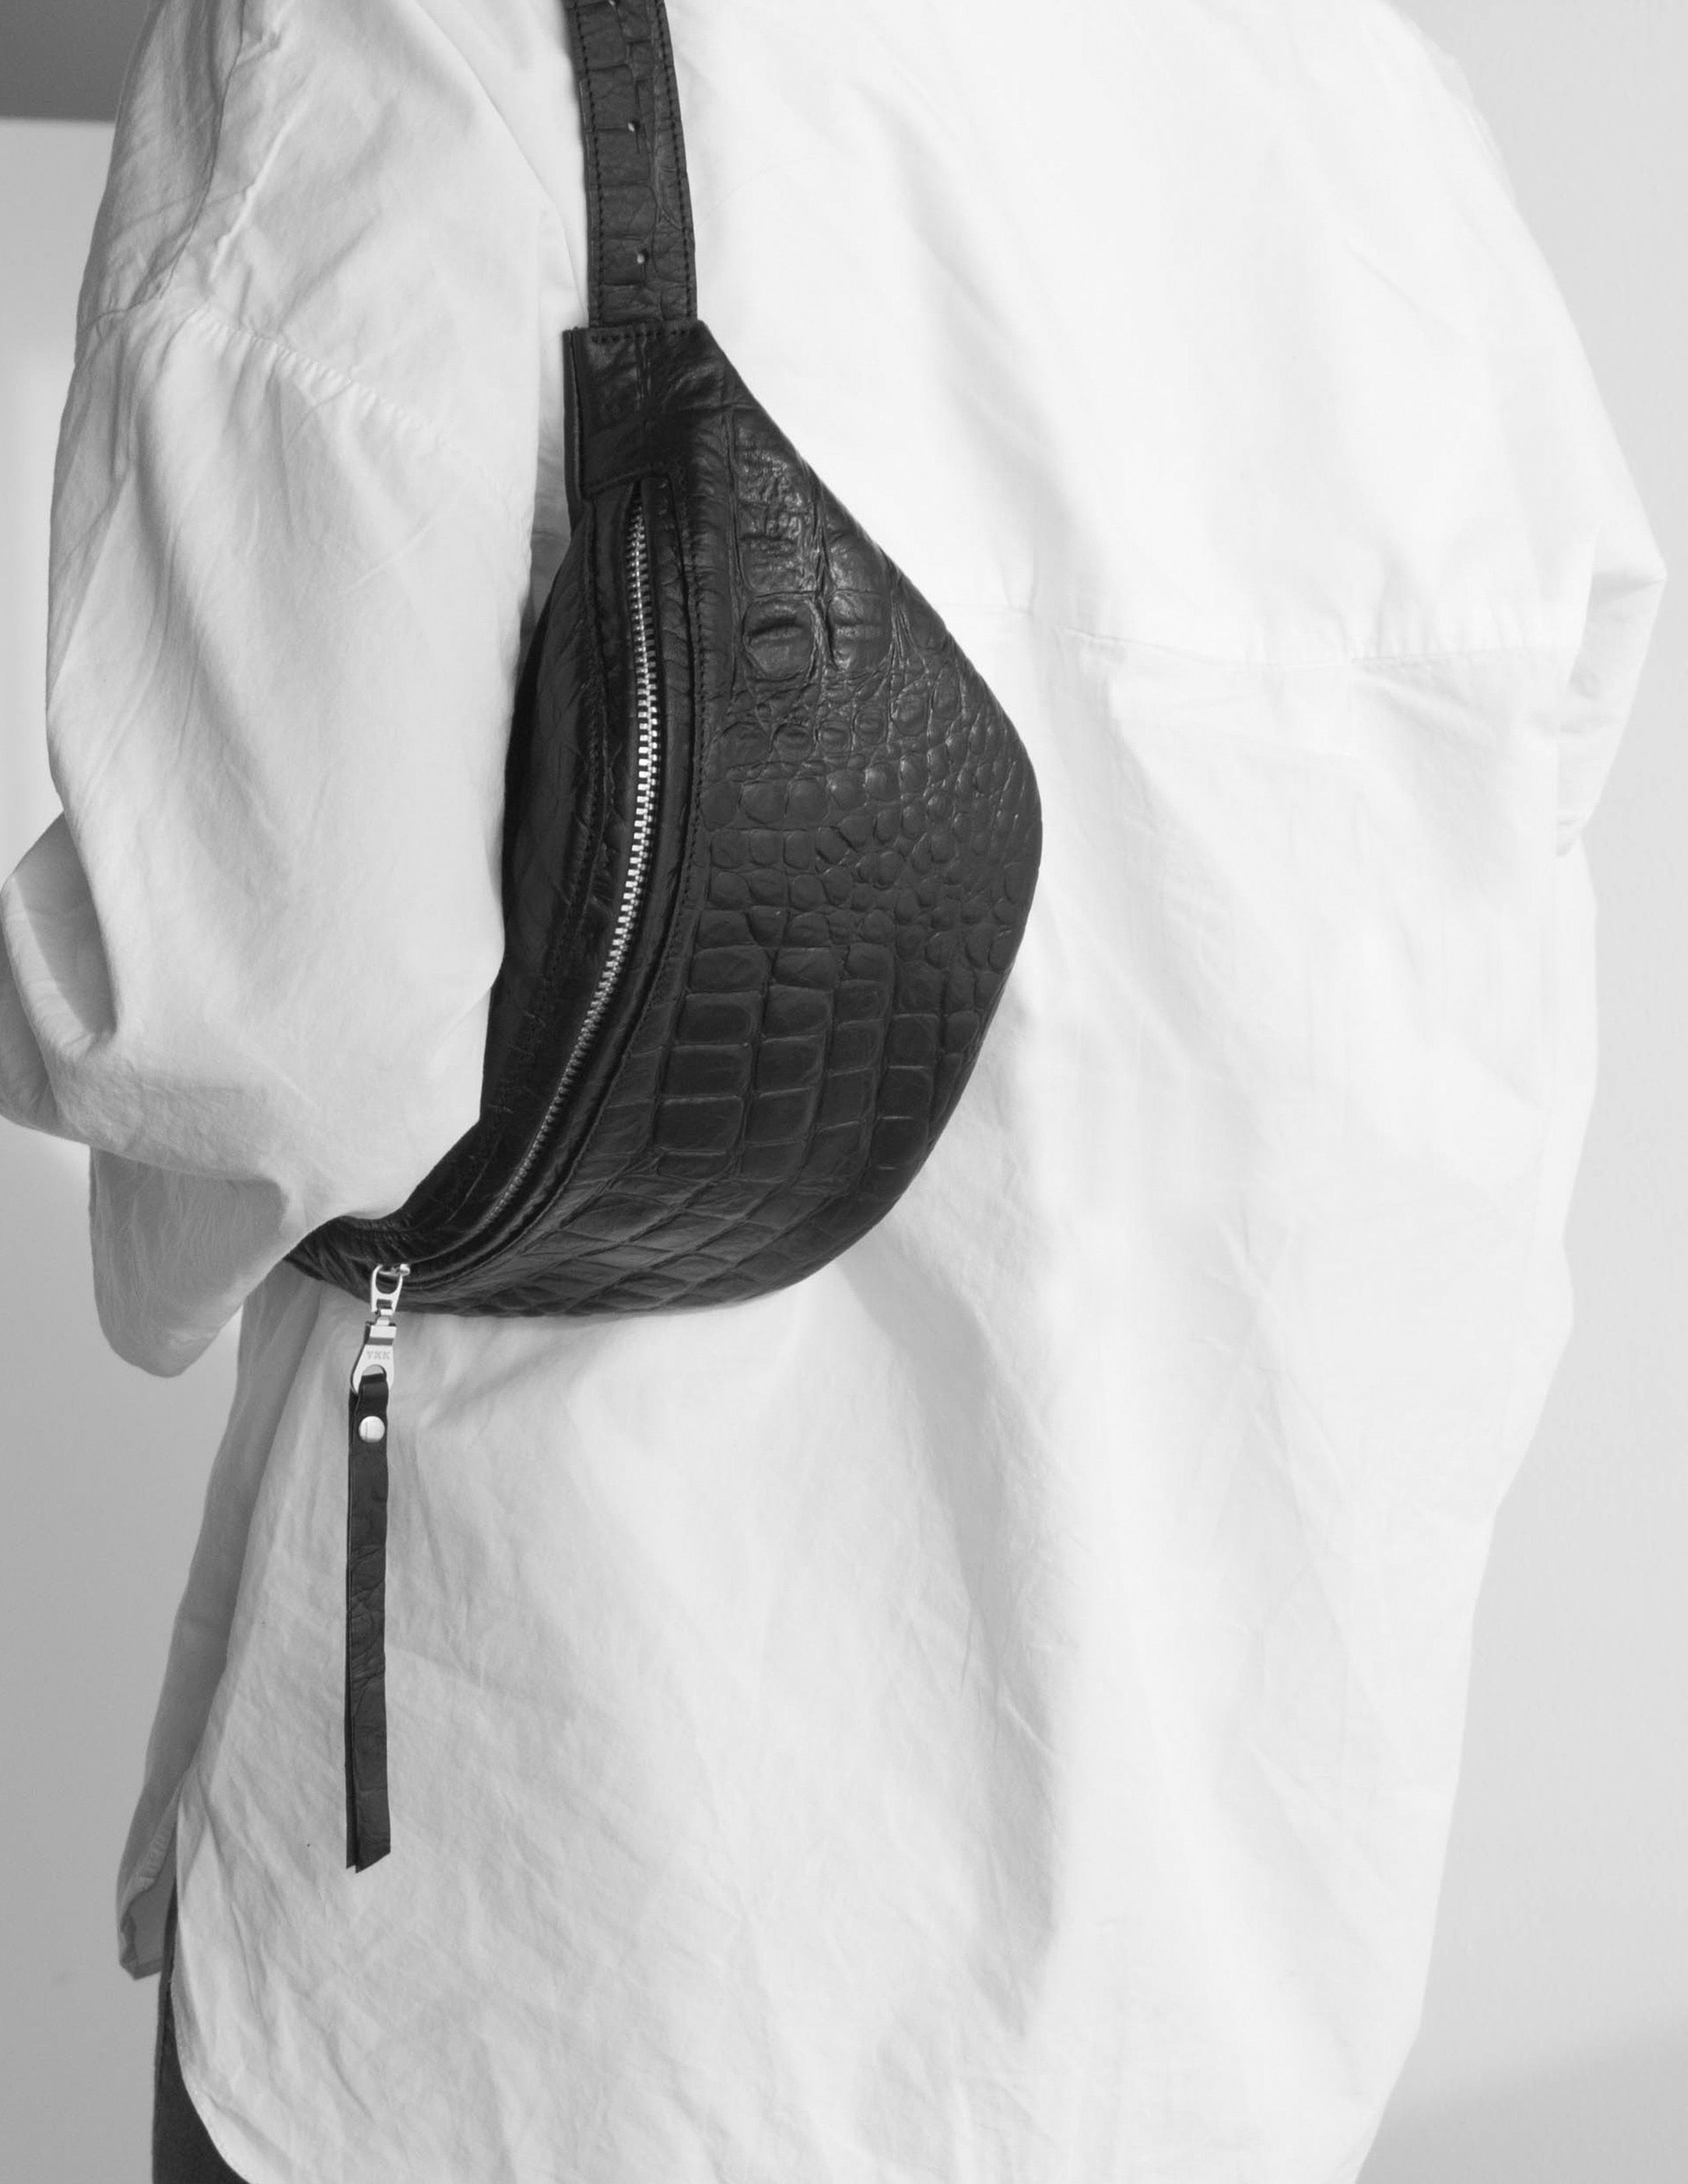 7614c60df White shirt with the modern fanny back 'SMALL' in soft italian black  leather with python print in a minimalist fashionable style handmade by  DAPHNY RAES in ...